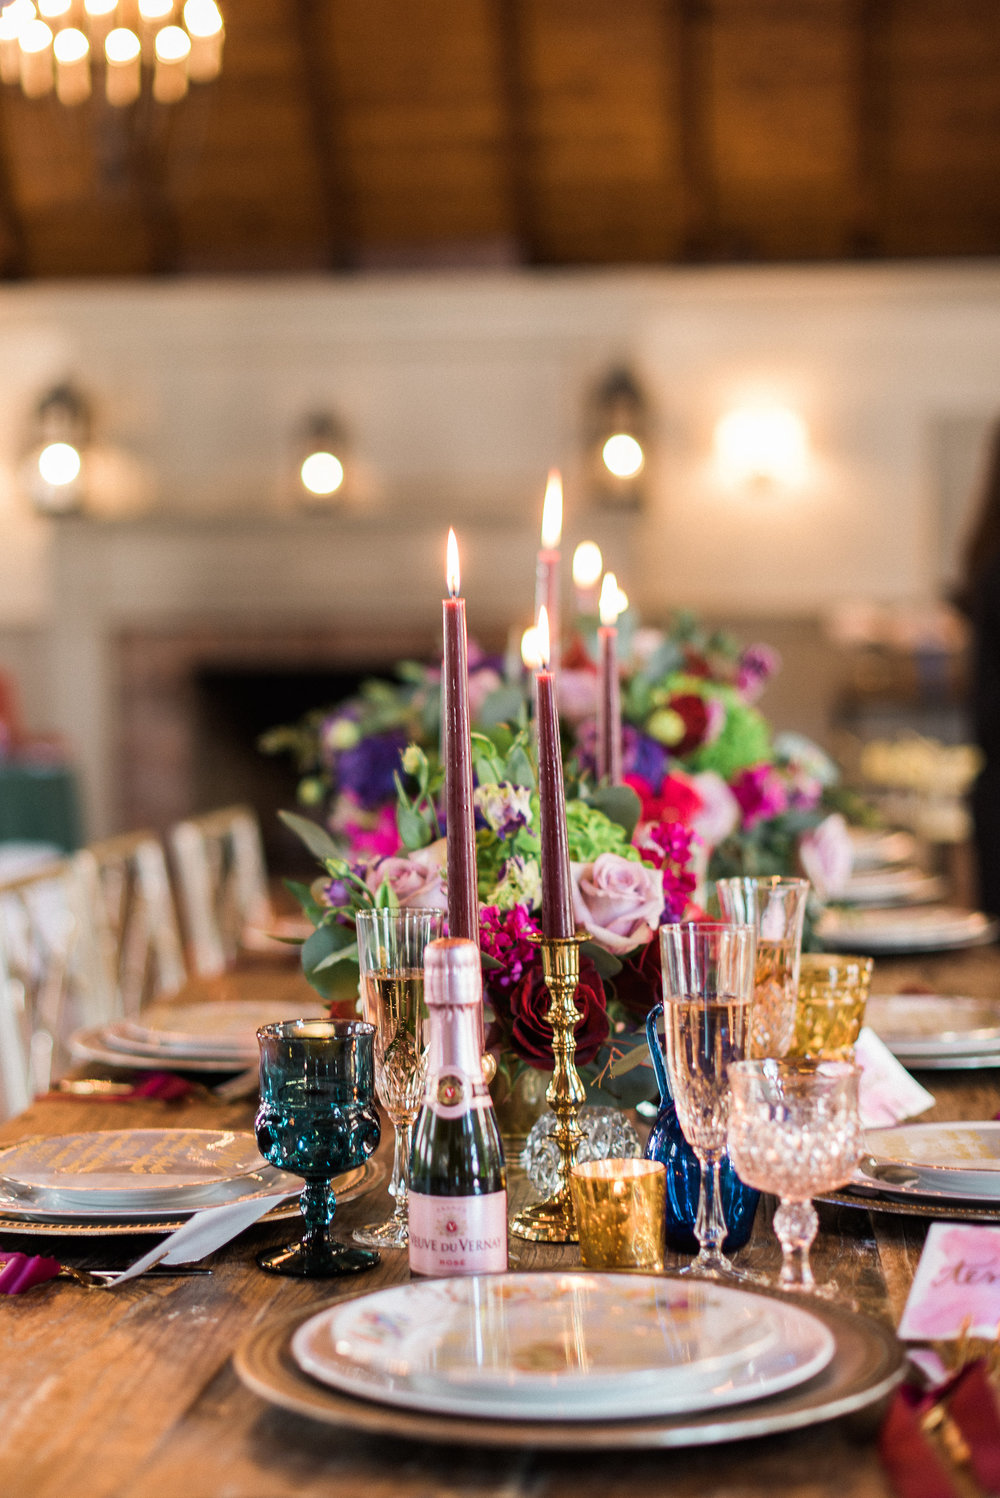 Event Styling by Eventful Days | Vintage tableware by Early Bird Vintage | Flowers by Sugar Magnolias Flowers | Venue is the Old Field Club | Rosé courtesy of Allison Cohen/Opici Wines